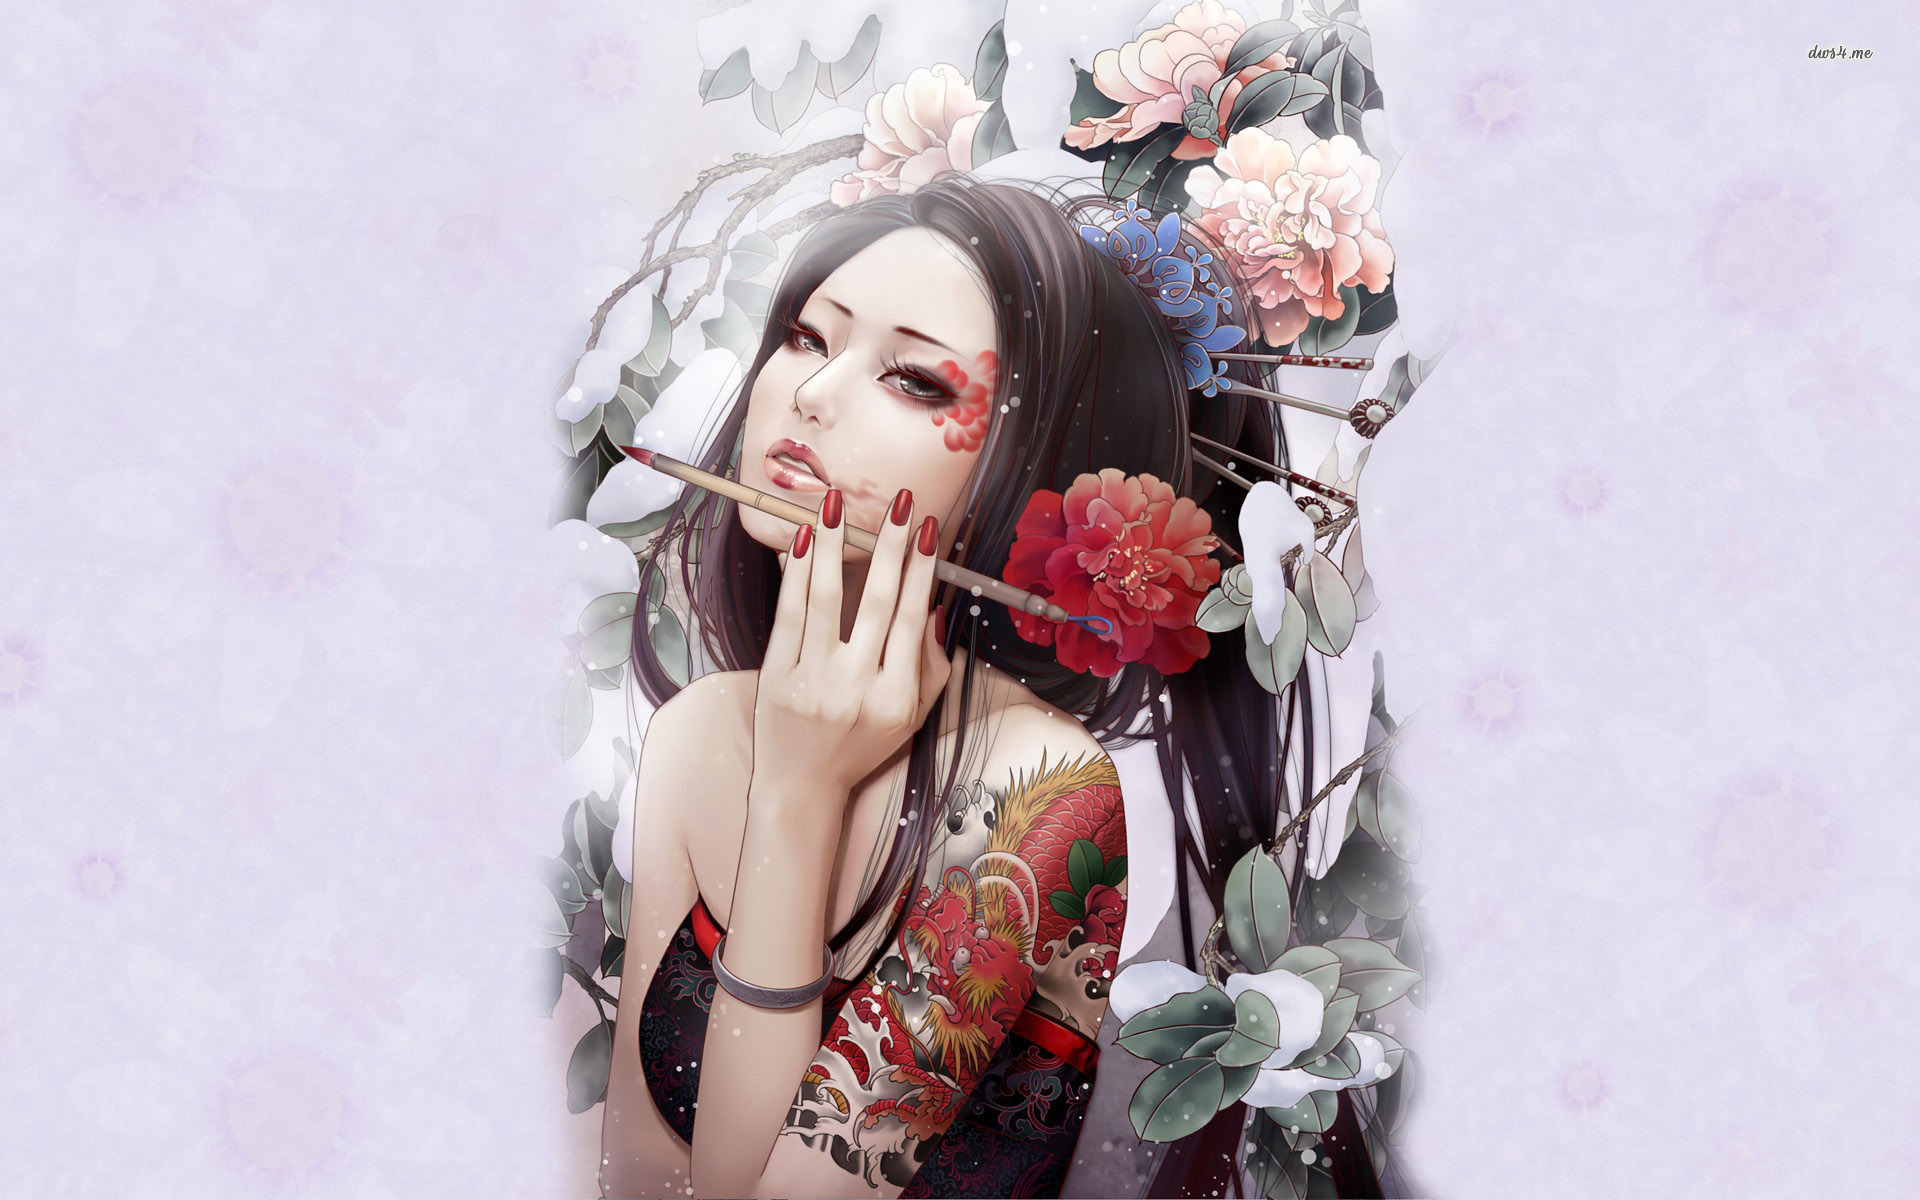 Artistic geisha wallpaper   Artistic wallpapers   17669 1920x1200